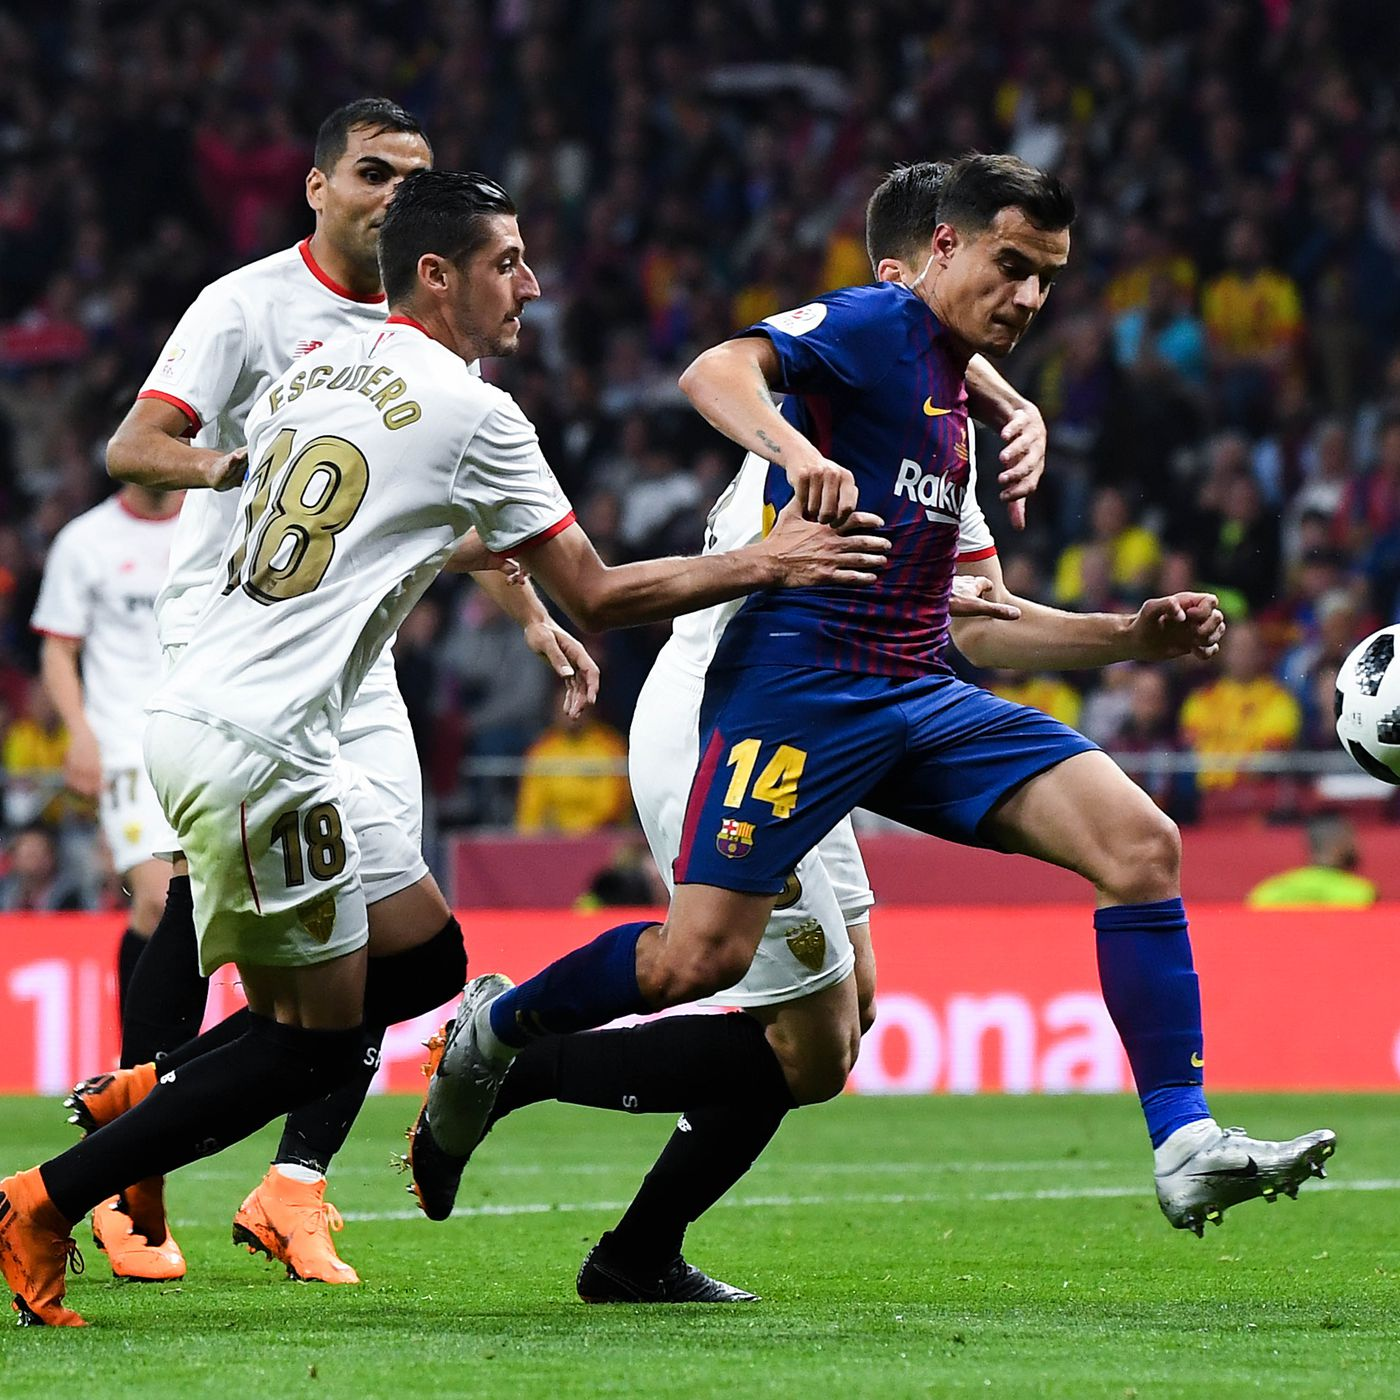 Fc Barcelona News 29 June 2018 Supercopa Facing Different Format Yerry Mina Sends Colombia Through Barca Blaugranes